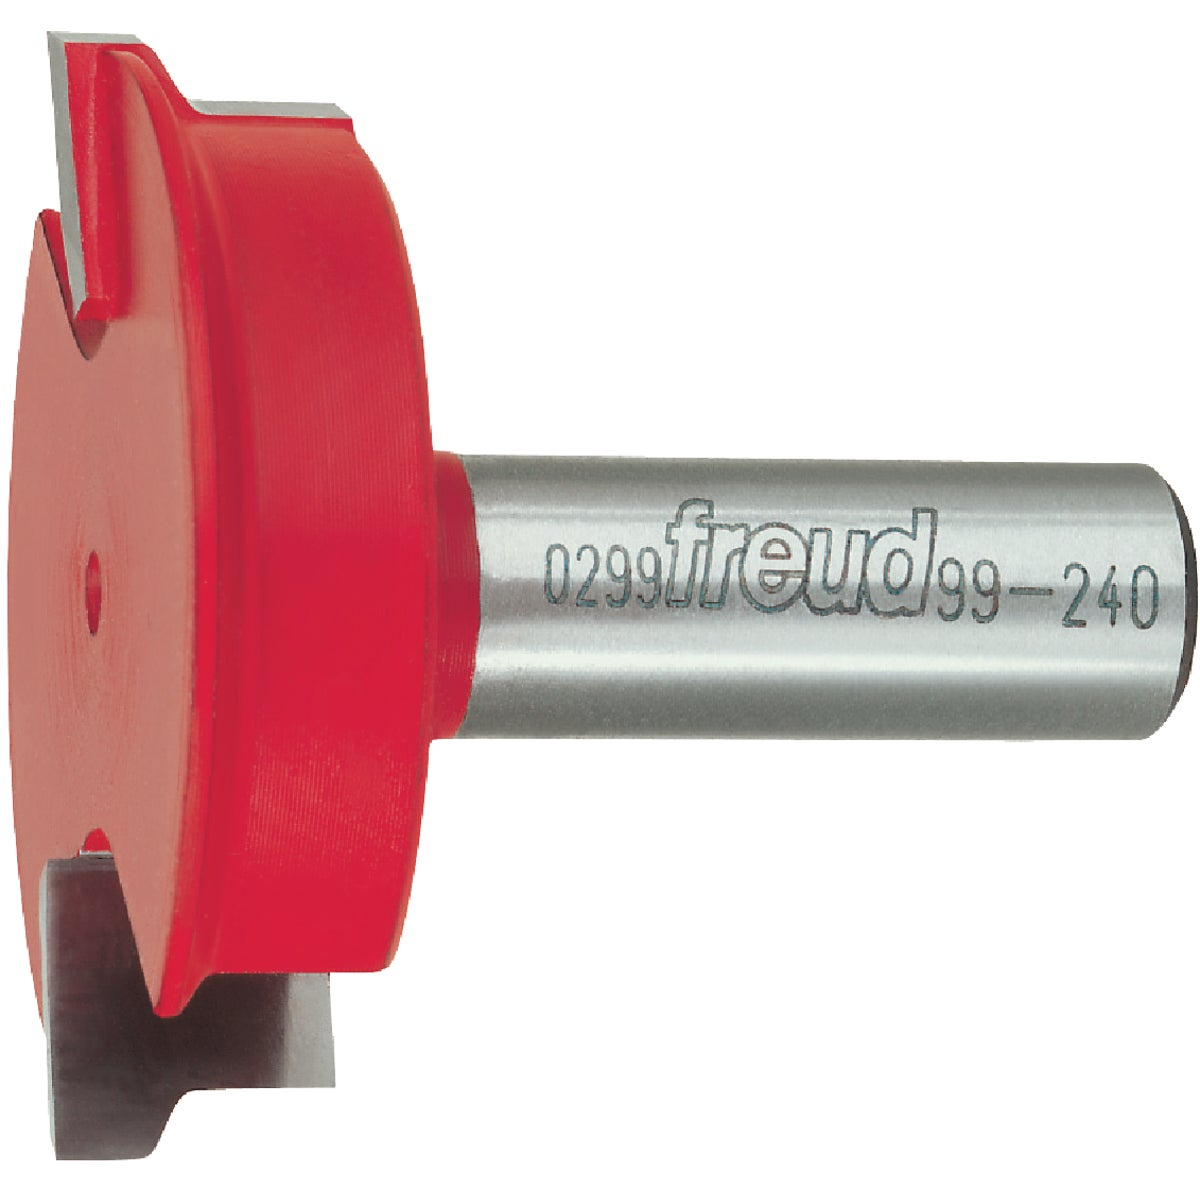 DRAWER LOCK BIT - 99-240 by Freud Inc